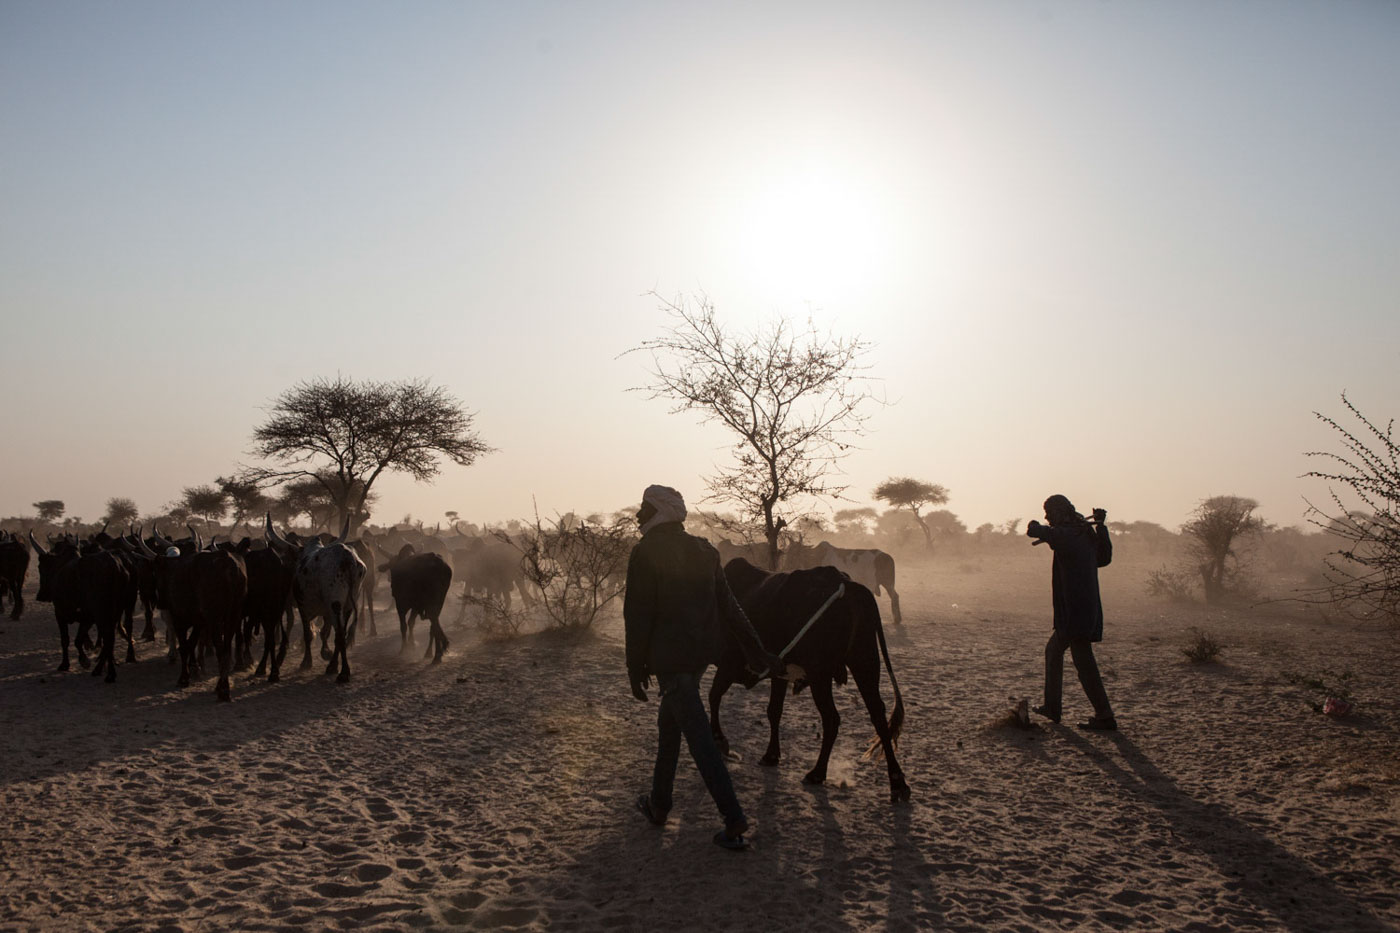 Herders lead their cows to be sold on the market in Northern Nigeria.